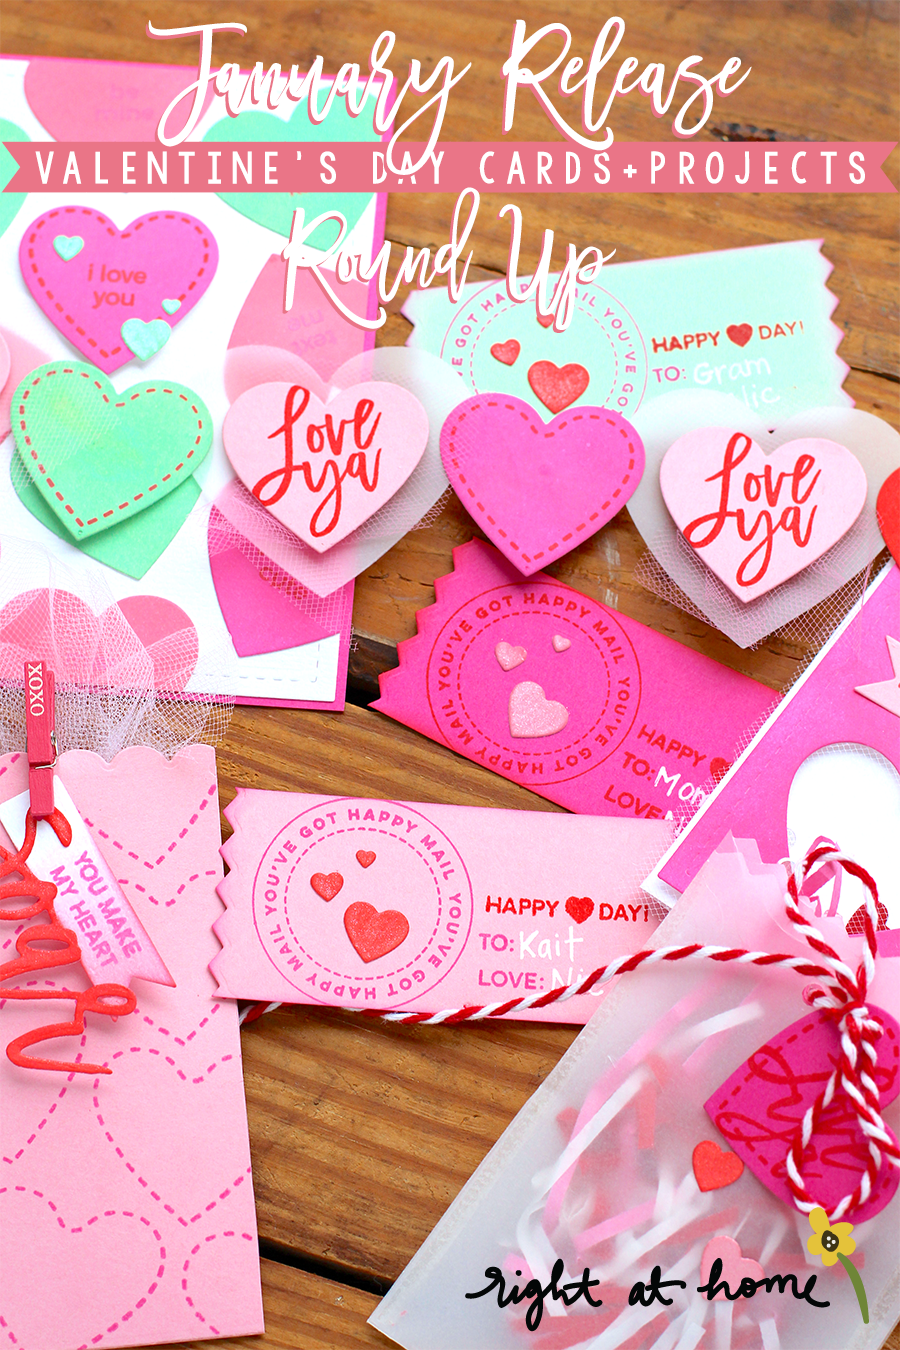 Right at Home Stamps January Release Valentine's Day Cards + Projects Round-Up // rightathomeshop.com/blog